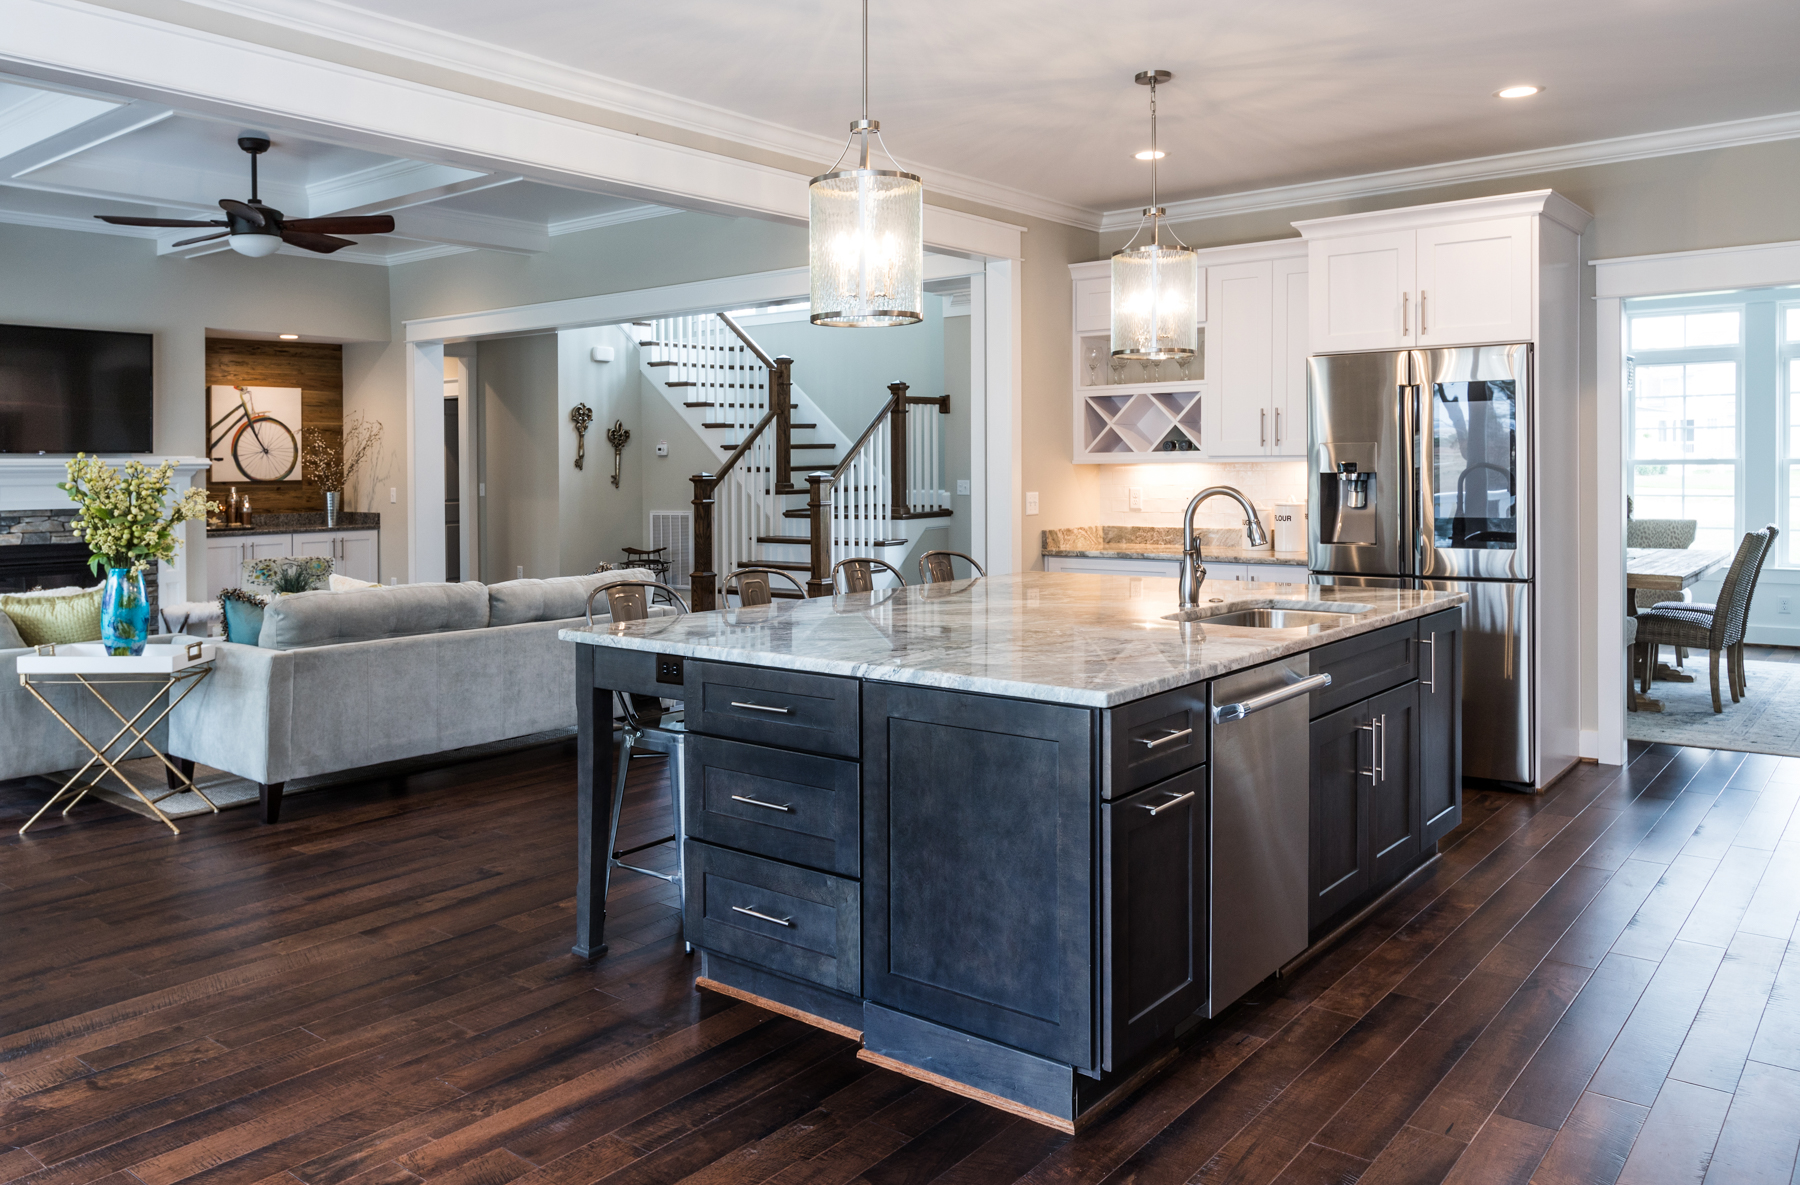 7 Ideas to Help Make Living in Your Home Easier & More Desirable ...